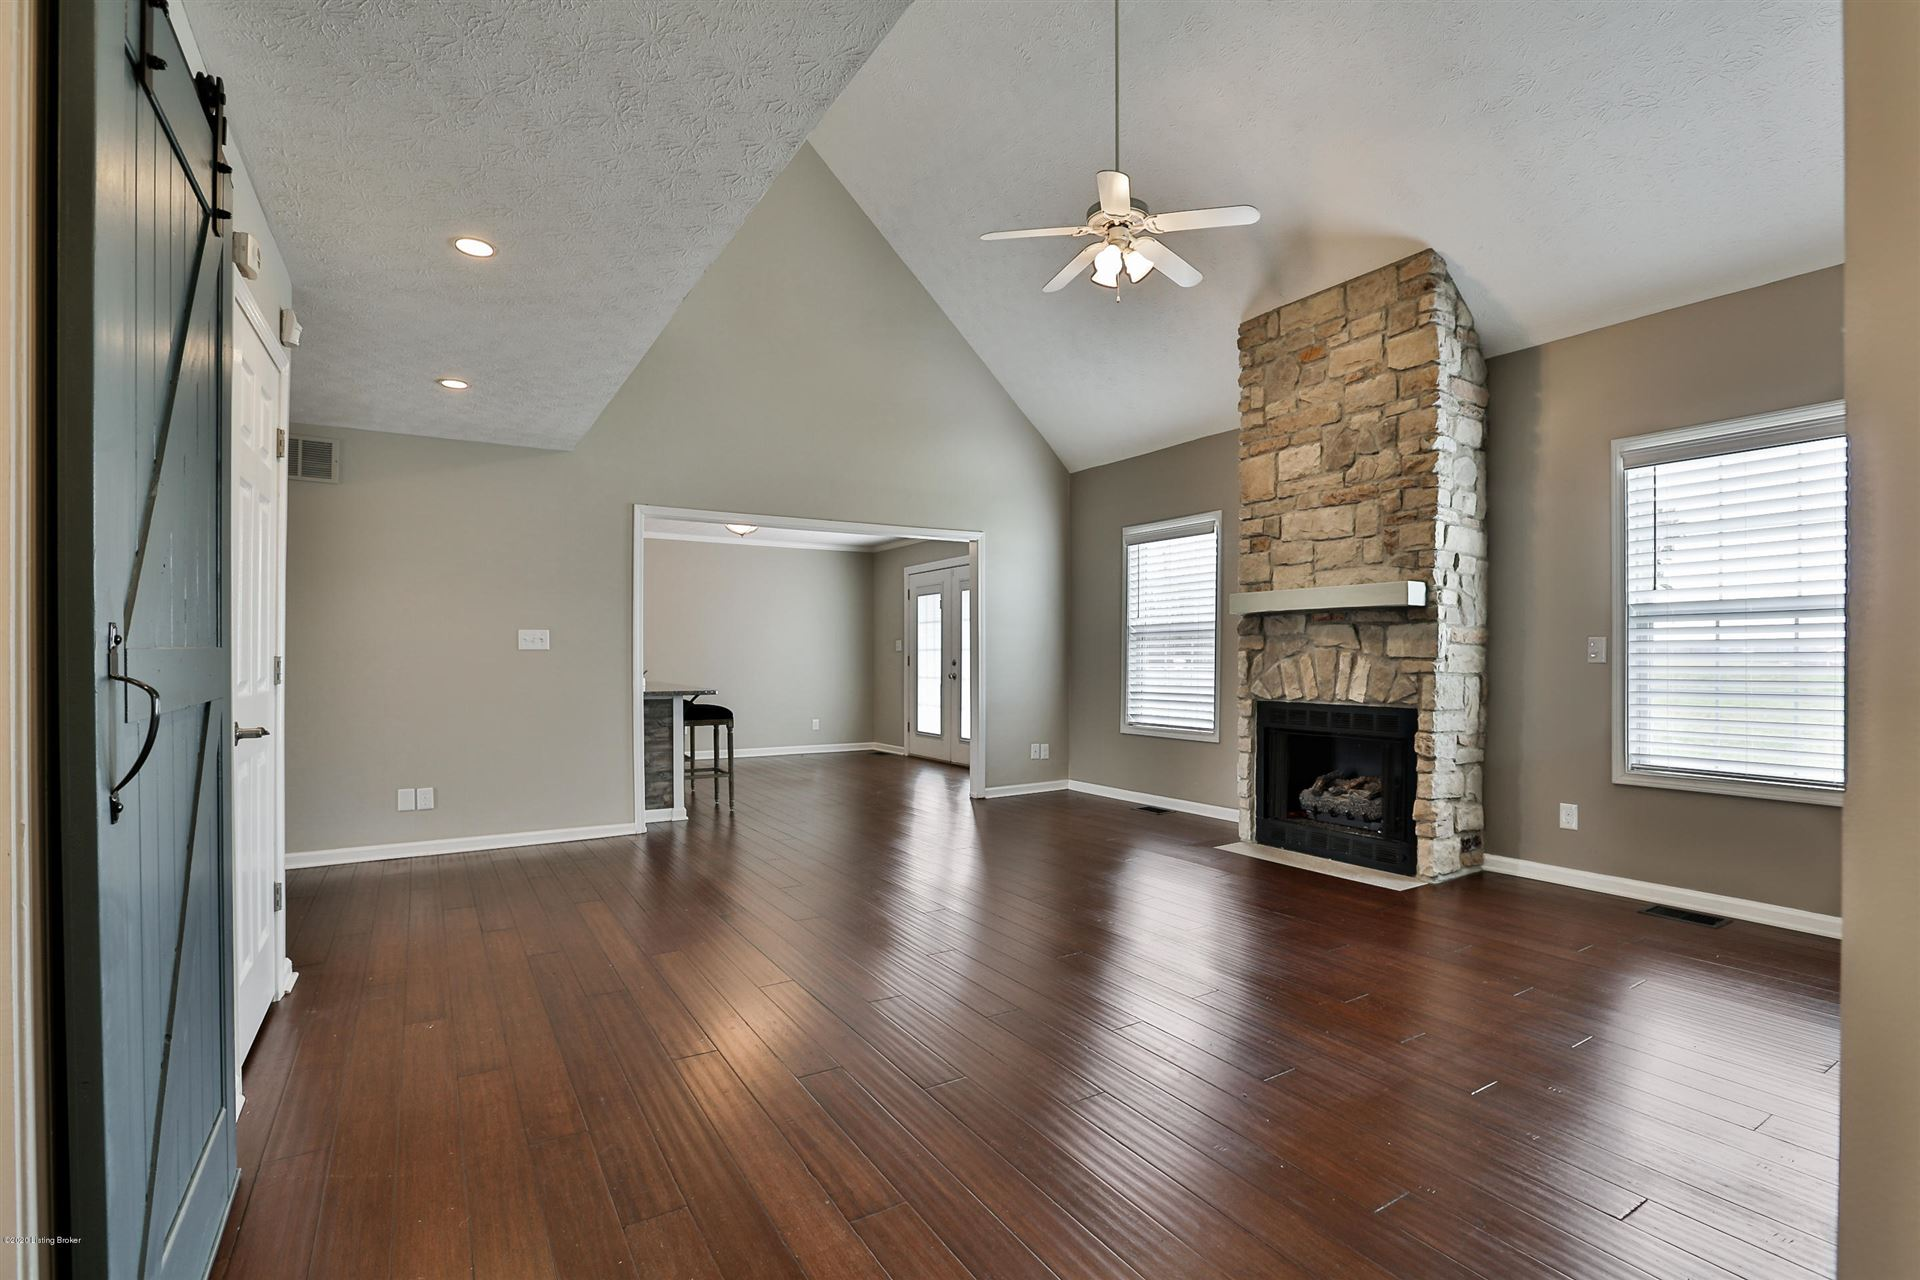 Property Image Of 1109 Summit Dr In Shelbyville, Ky